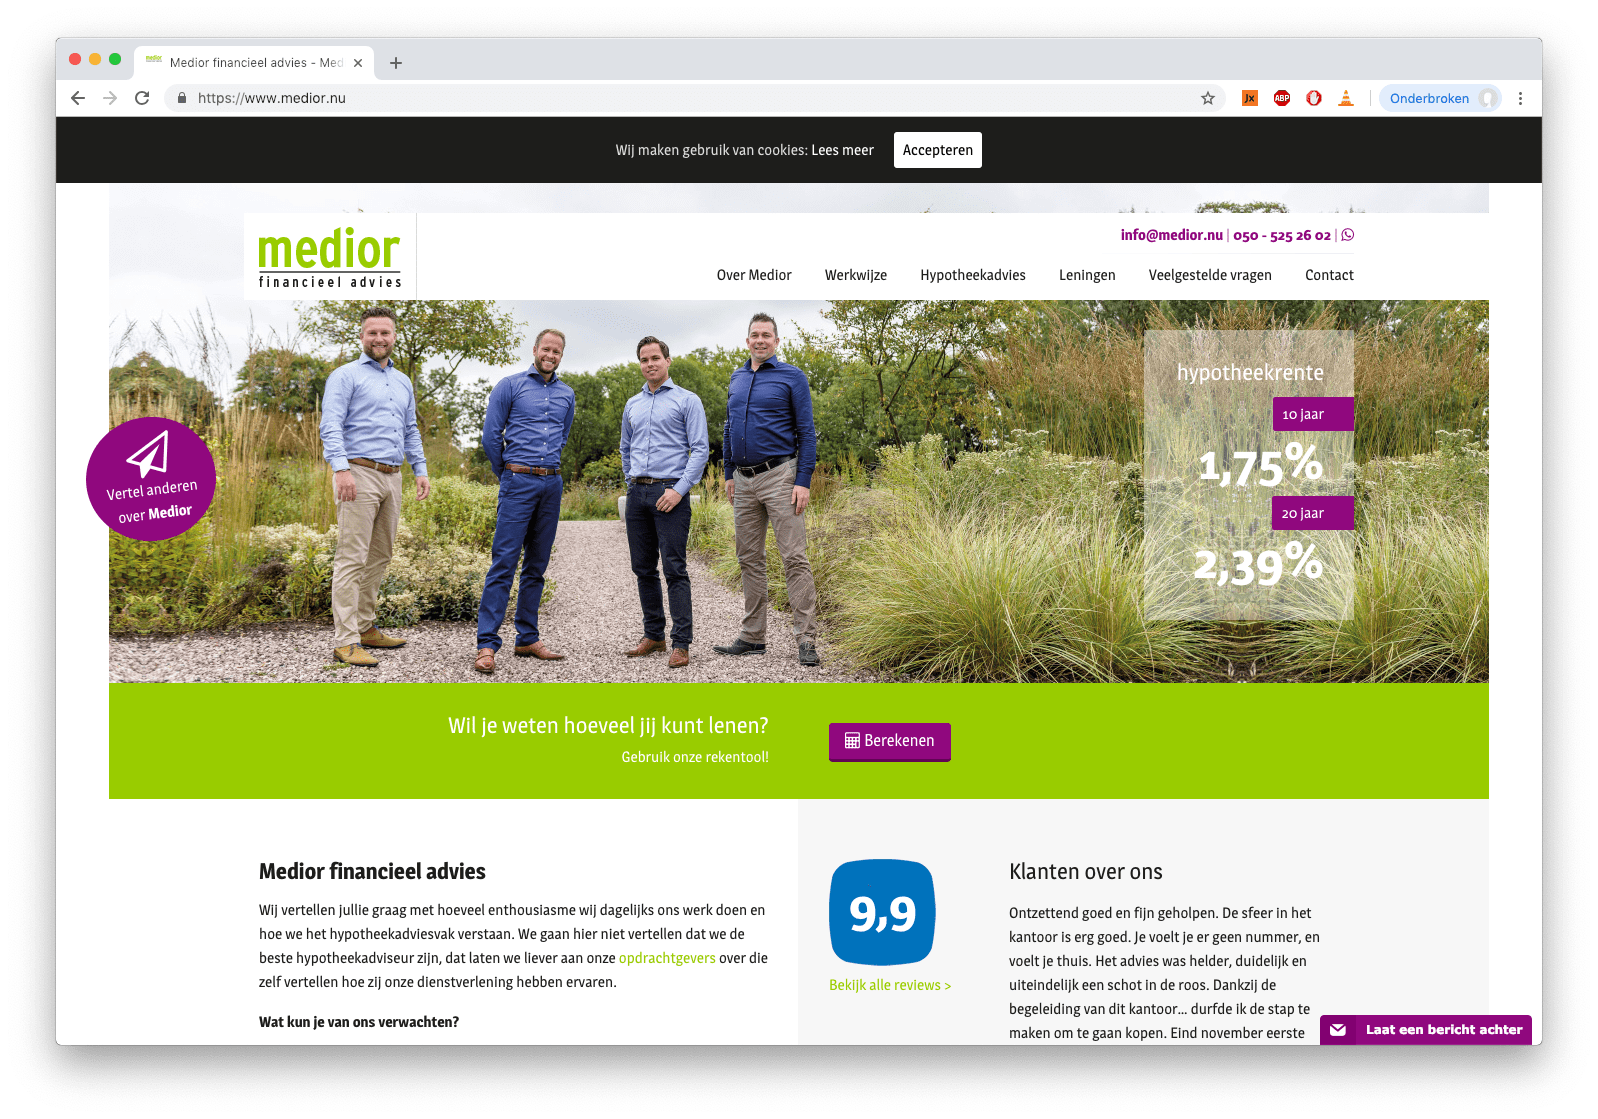 Medior financieeladvies